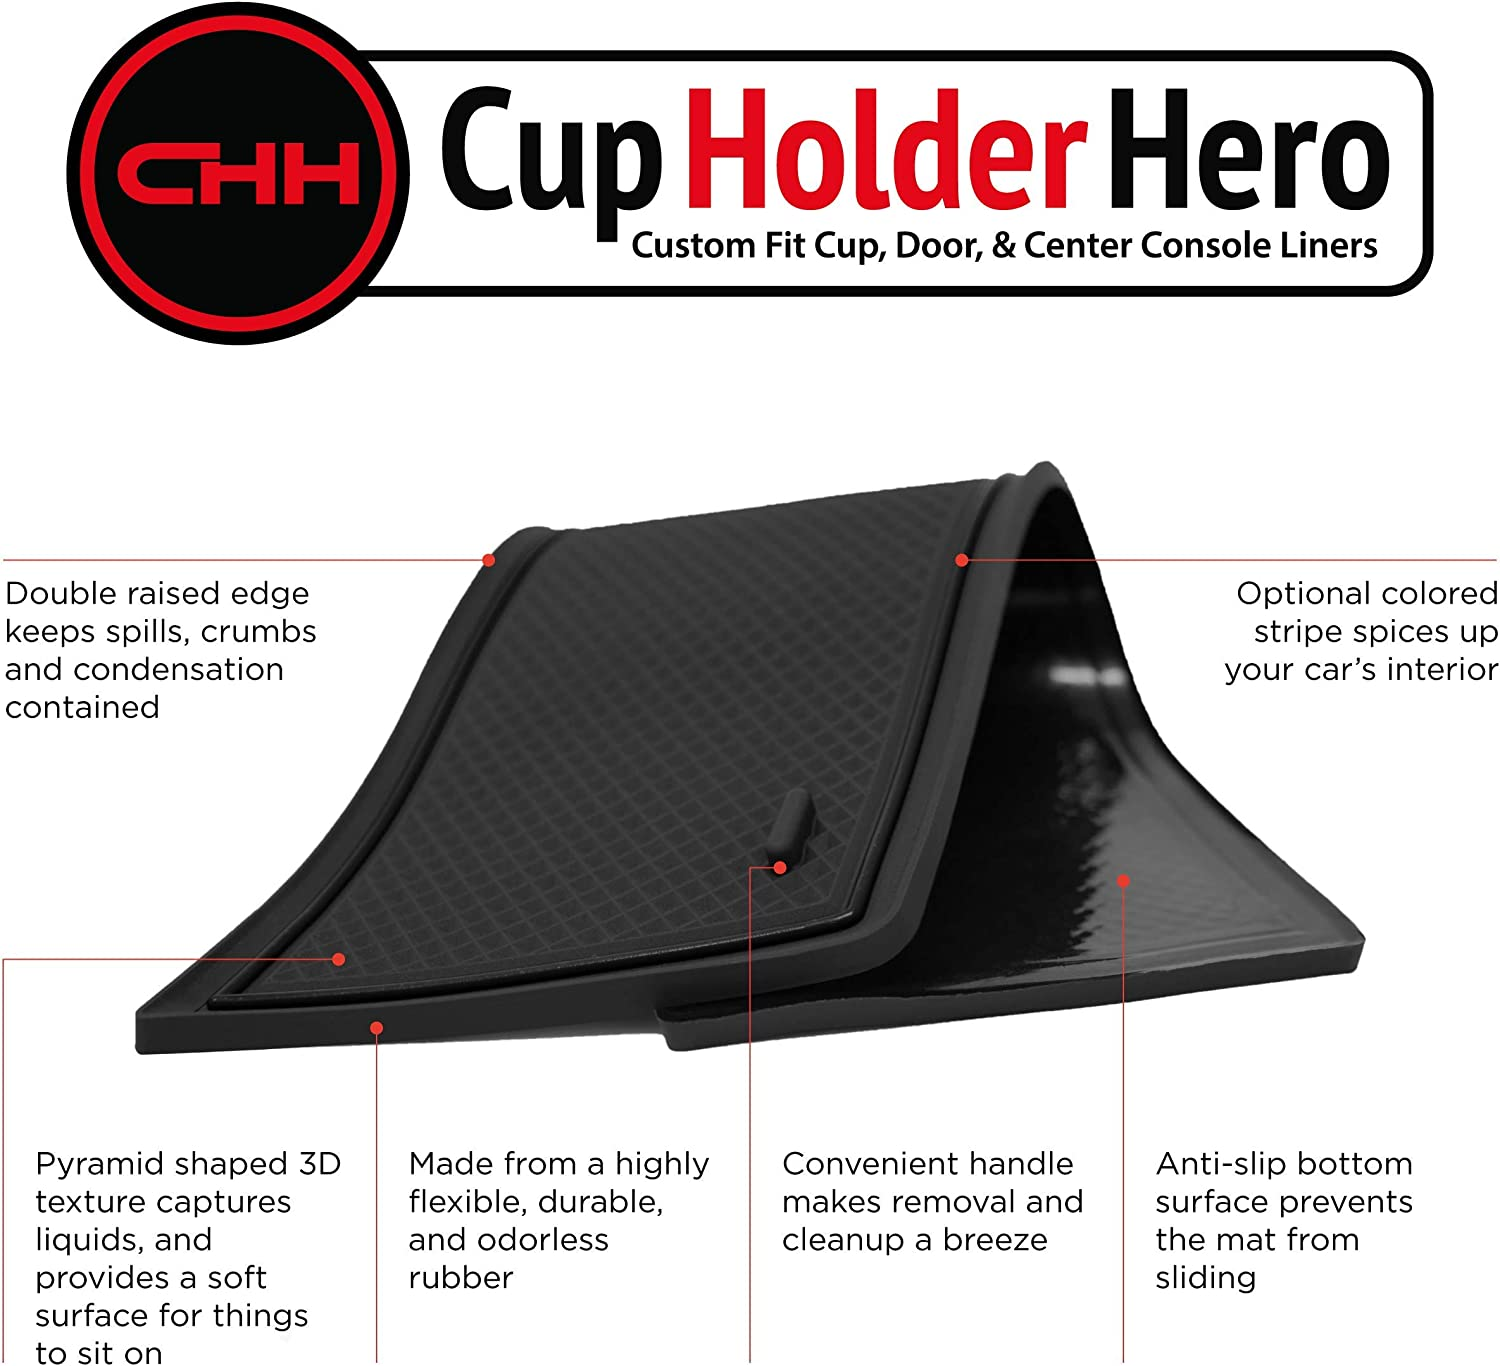 Door Red Trim and Center Console Liner Accessories 9-pc Set CupHolderHero for Chevy Camaro 2016-2020 Custom Fit Cup Holder